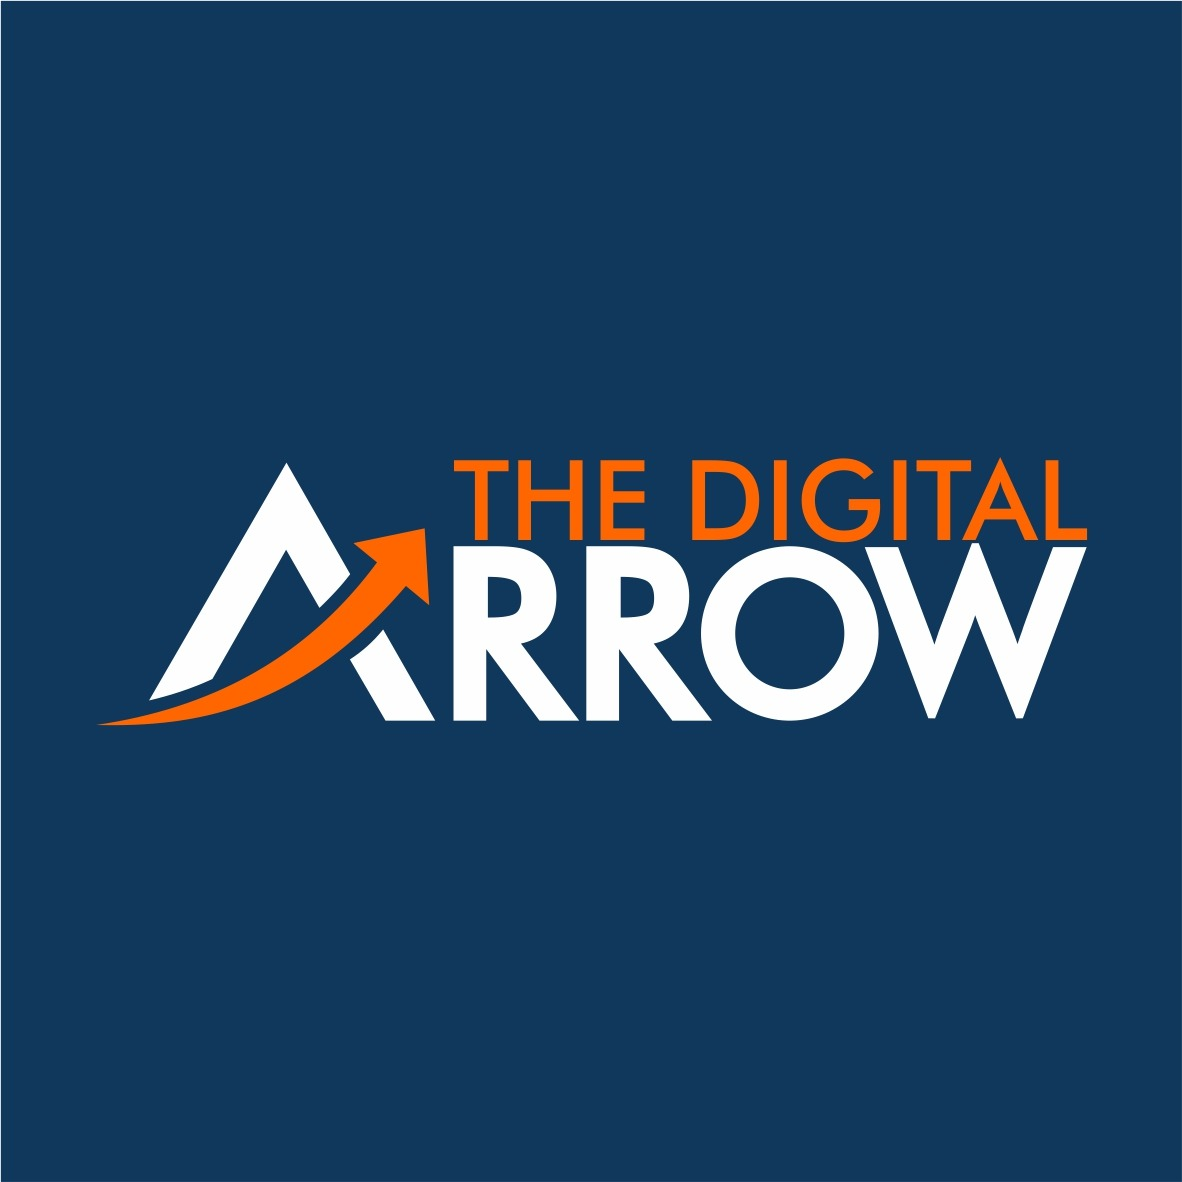 The Digital Arrow Logo